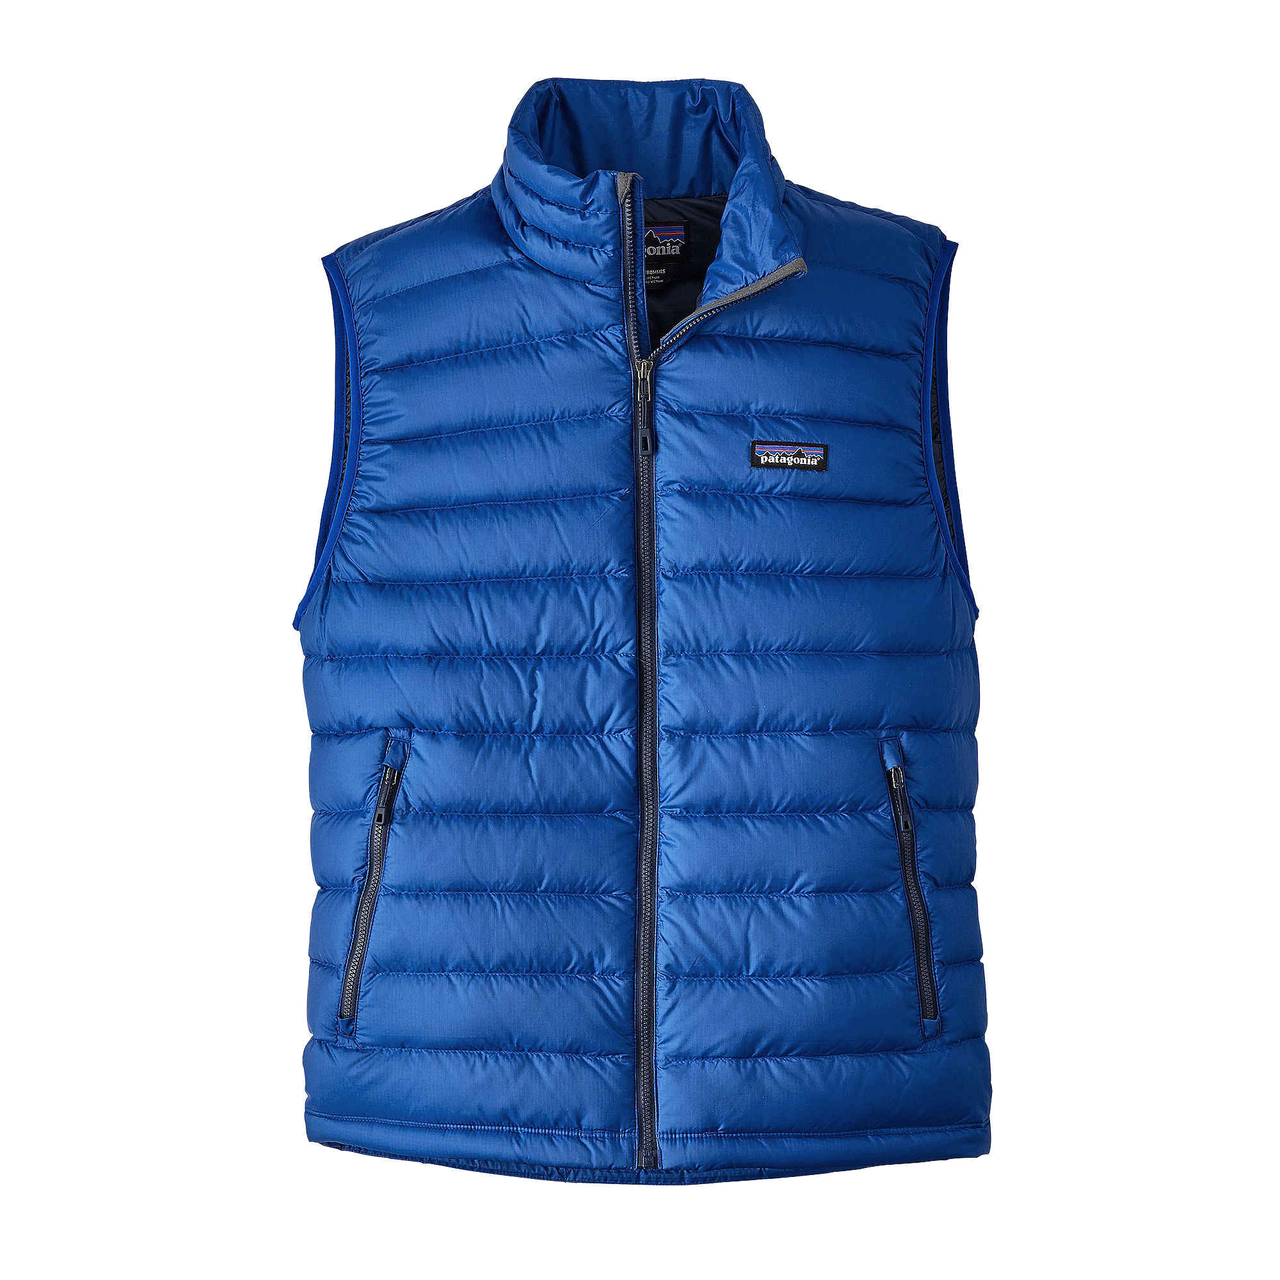 Patagonia Men's Down Sweater Vest Viking Blue - Gear West Ski and Run